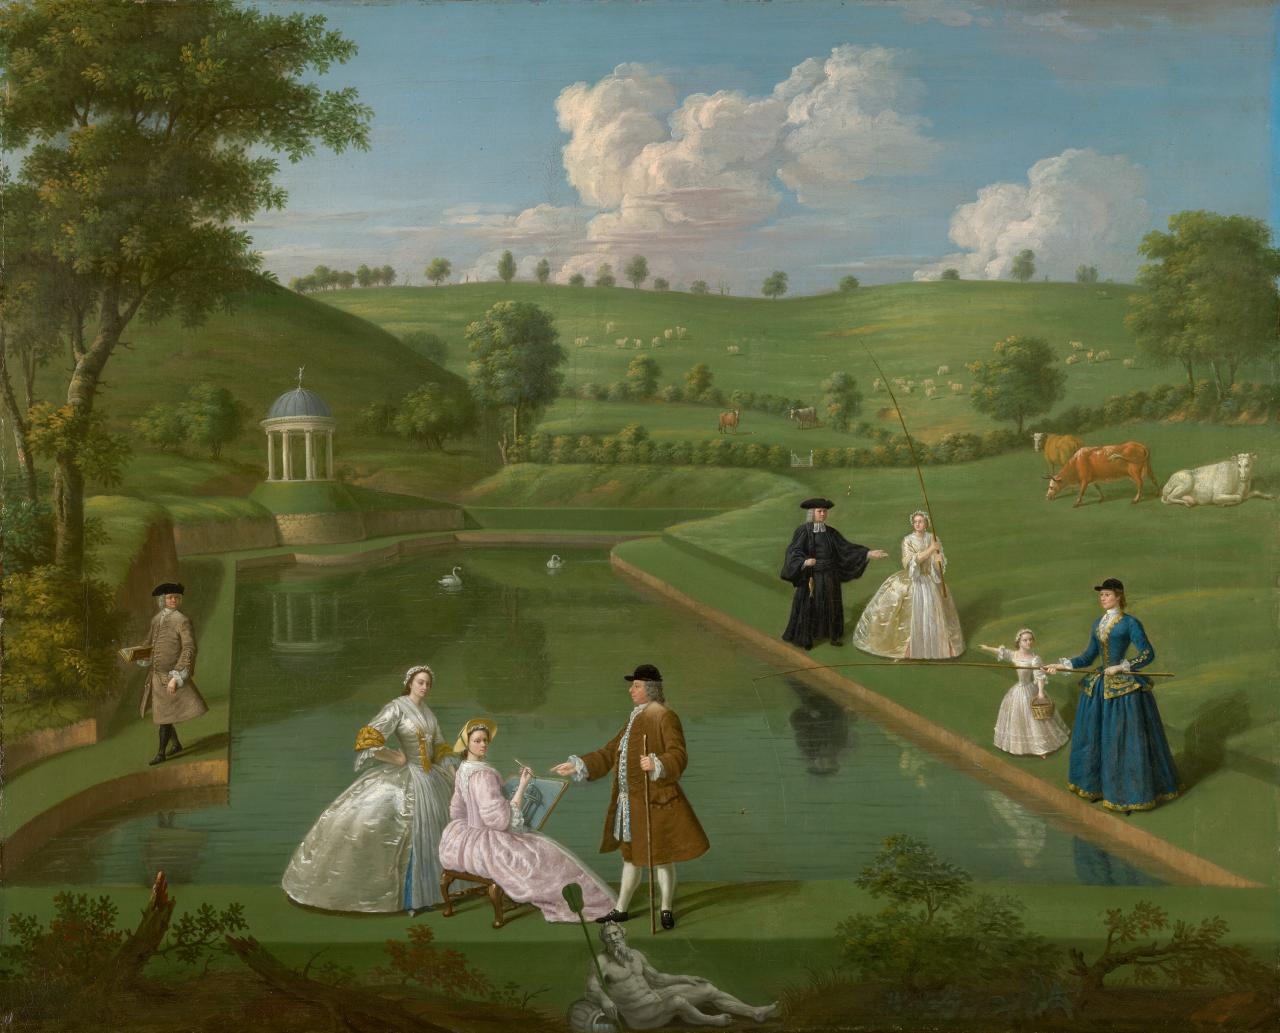 (The Brockman family at Beachborough - Temple pond with temple in the distance at left)